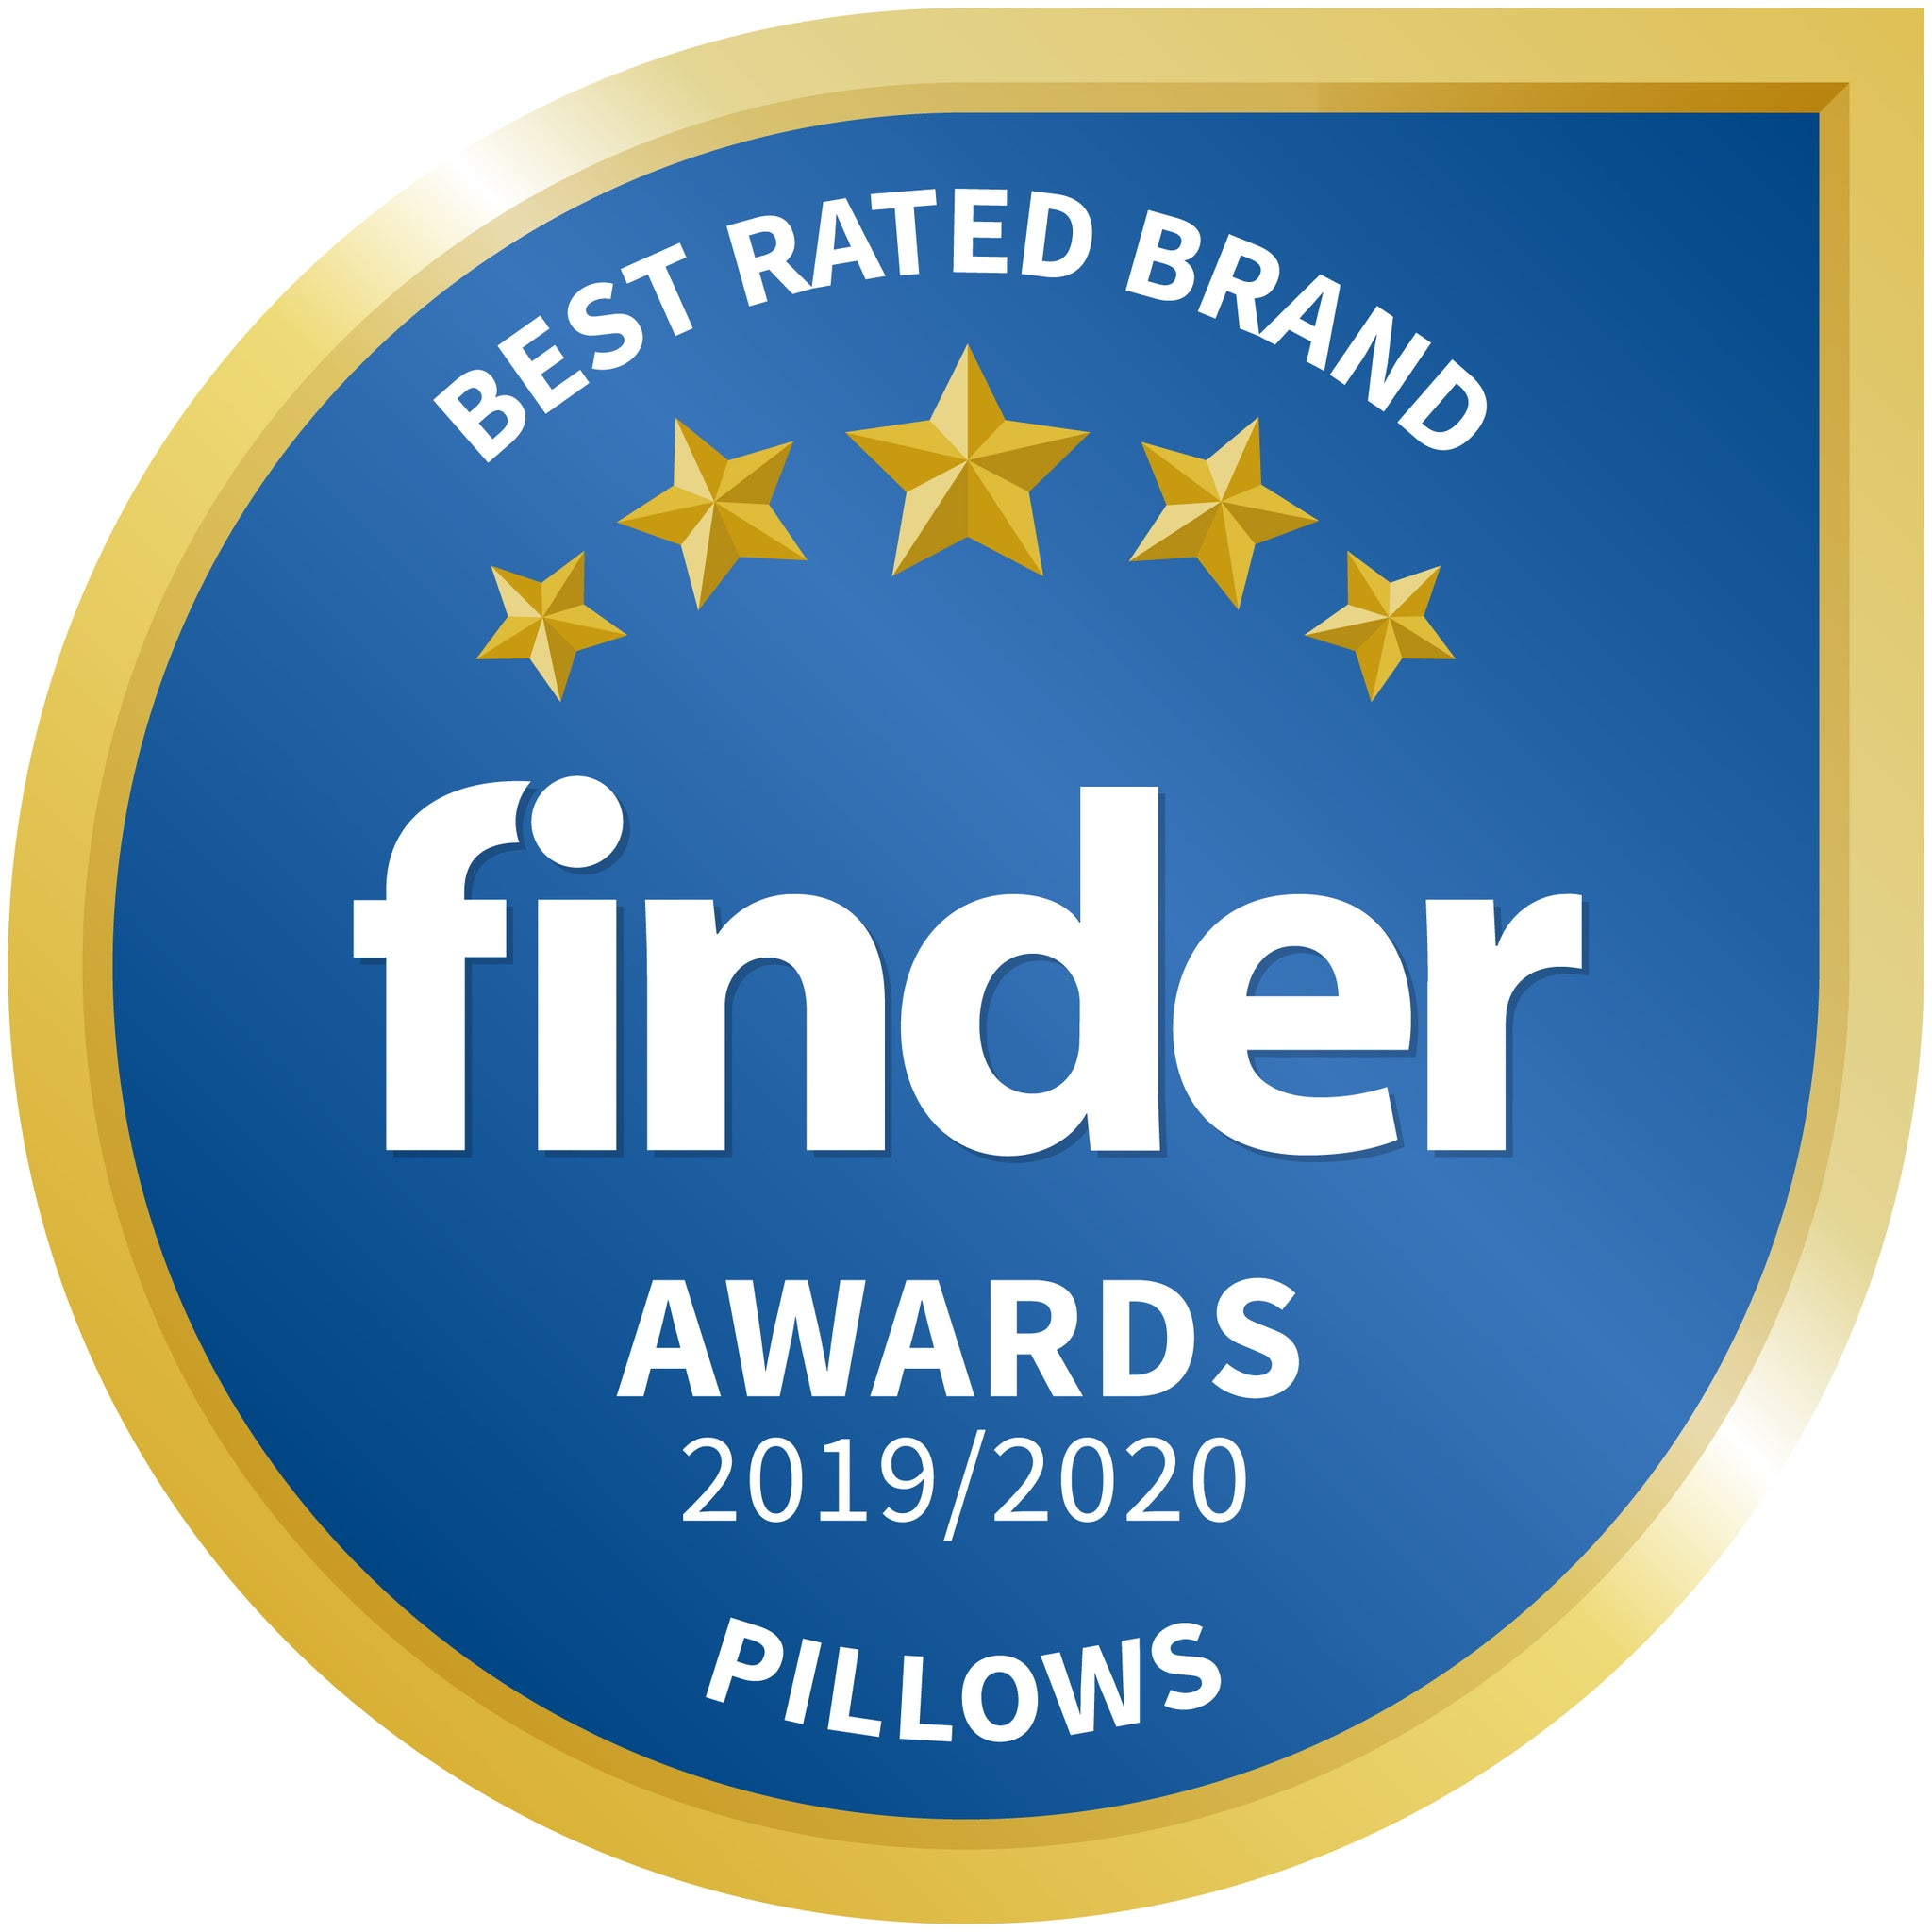 Best Rated Brand Finder Awards 2020 Pillows